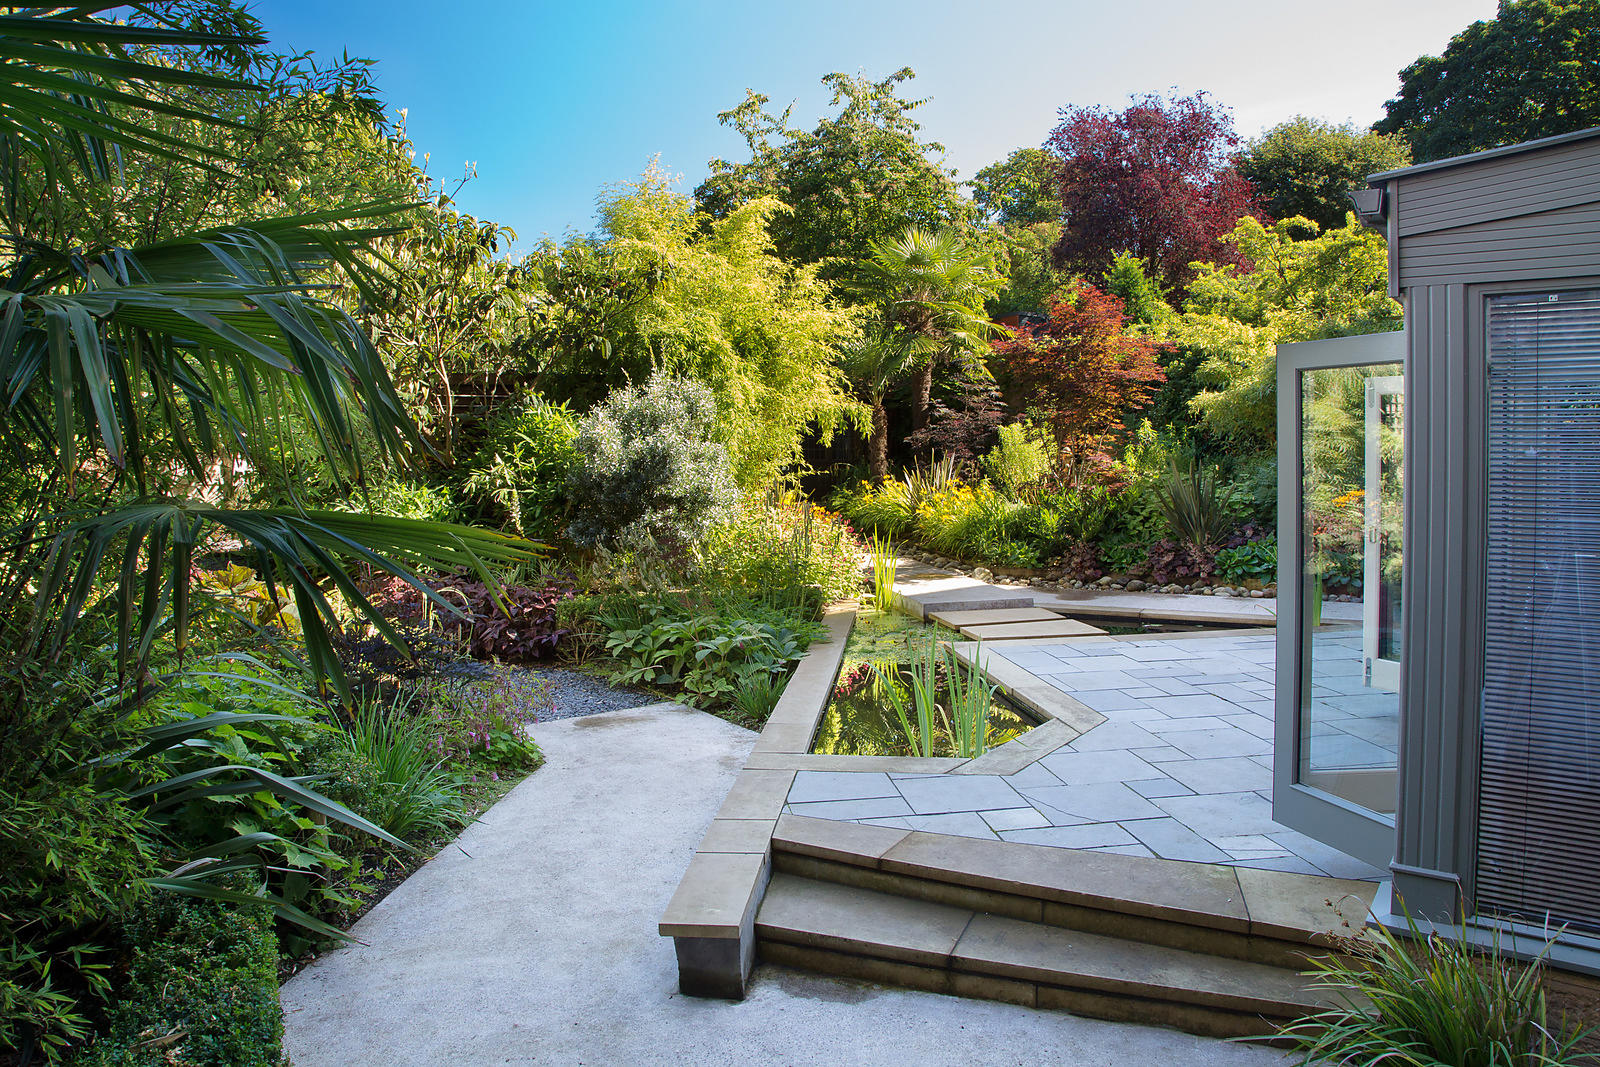 Urban garden featuring contemporary landscaping and planting inspired by south-east Asian jungle